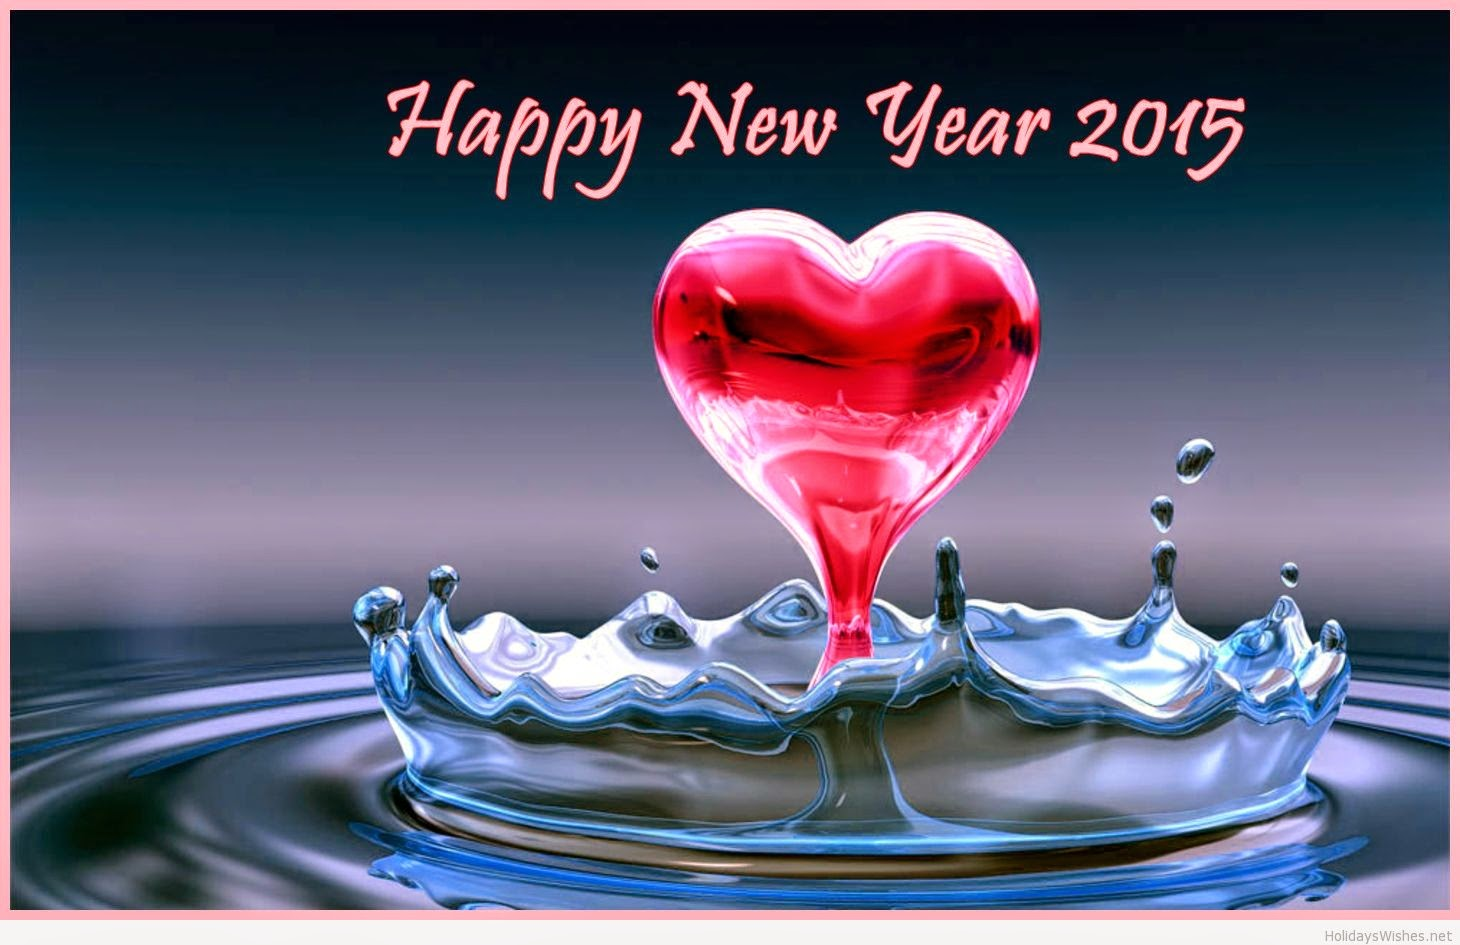 Wallpaper download new year 2015 - With The New Year Wishes You Have More To Do With New Year Can Check Latest Gift Idea For Girlfriend On New Year From Here Or Can Also Send Gift To Your